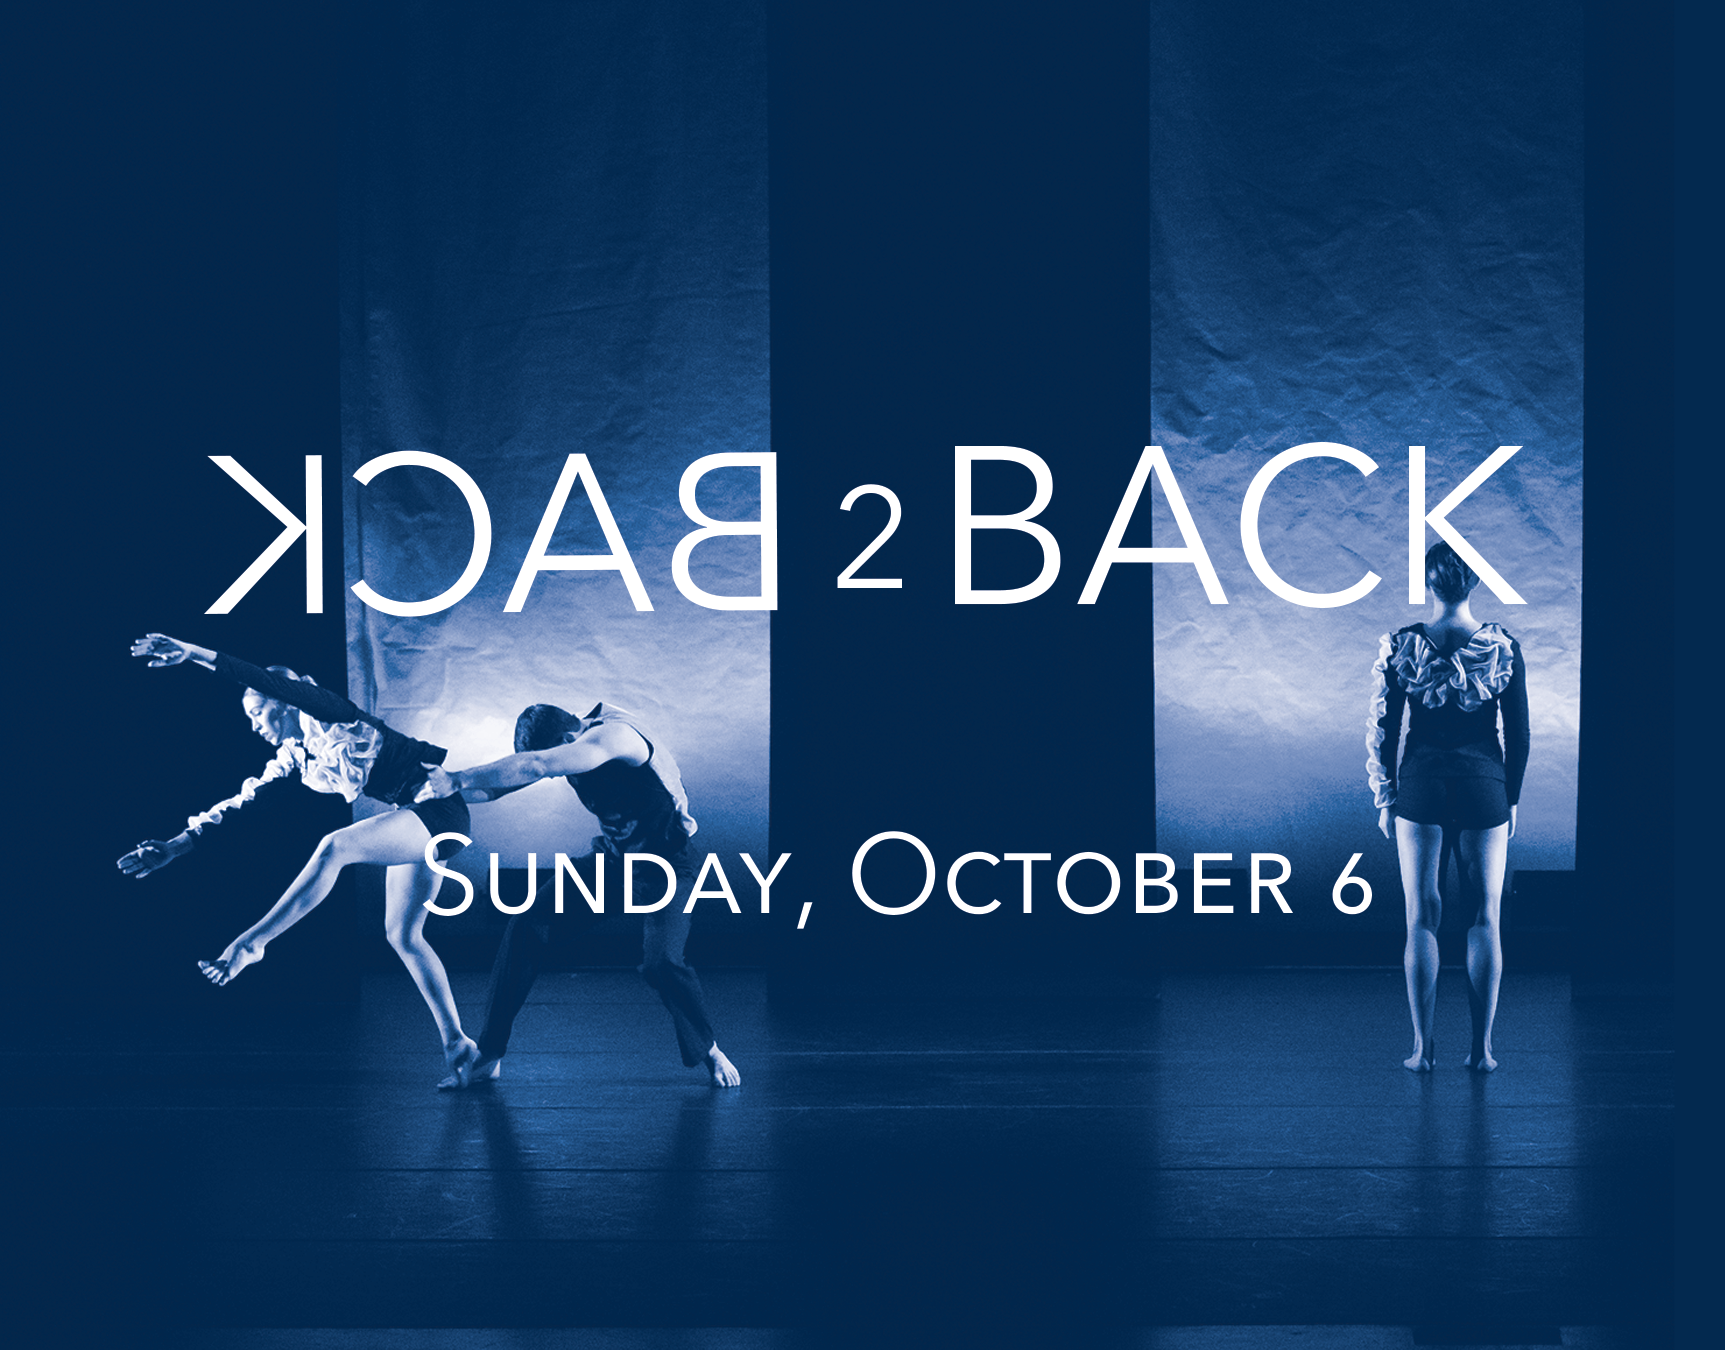 Back2Back|Bach2Beatles - Sunday, October 6 | 2:00pmCelebrate as Eisenhower Dance Detroit opens it's 29th Metro Series Season with Back2Back|Bach2Beatles. In collaboration with Detroit electro-pop violin band, Nuclassica, this exhilarating double bill will feature EDD Artistic Director, Stephanie Pizzo's, The Lovely Exchange, set to Bach's Partita for Violin Solo No. 1 in B Minor and the premiere of her new work set to the timeless music of the Beatles with live musical accompaniment.Seligman Performing Arts Center22305 W. Thirteen Mile Rd. Beverly Hills, MI 48025.